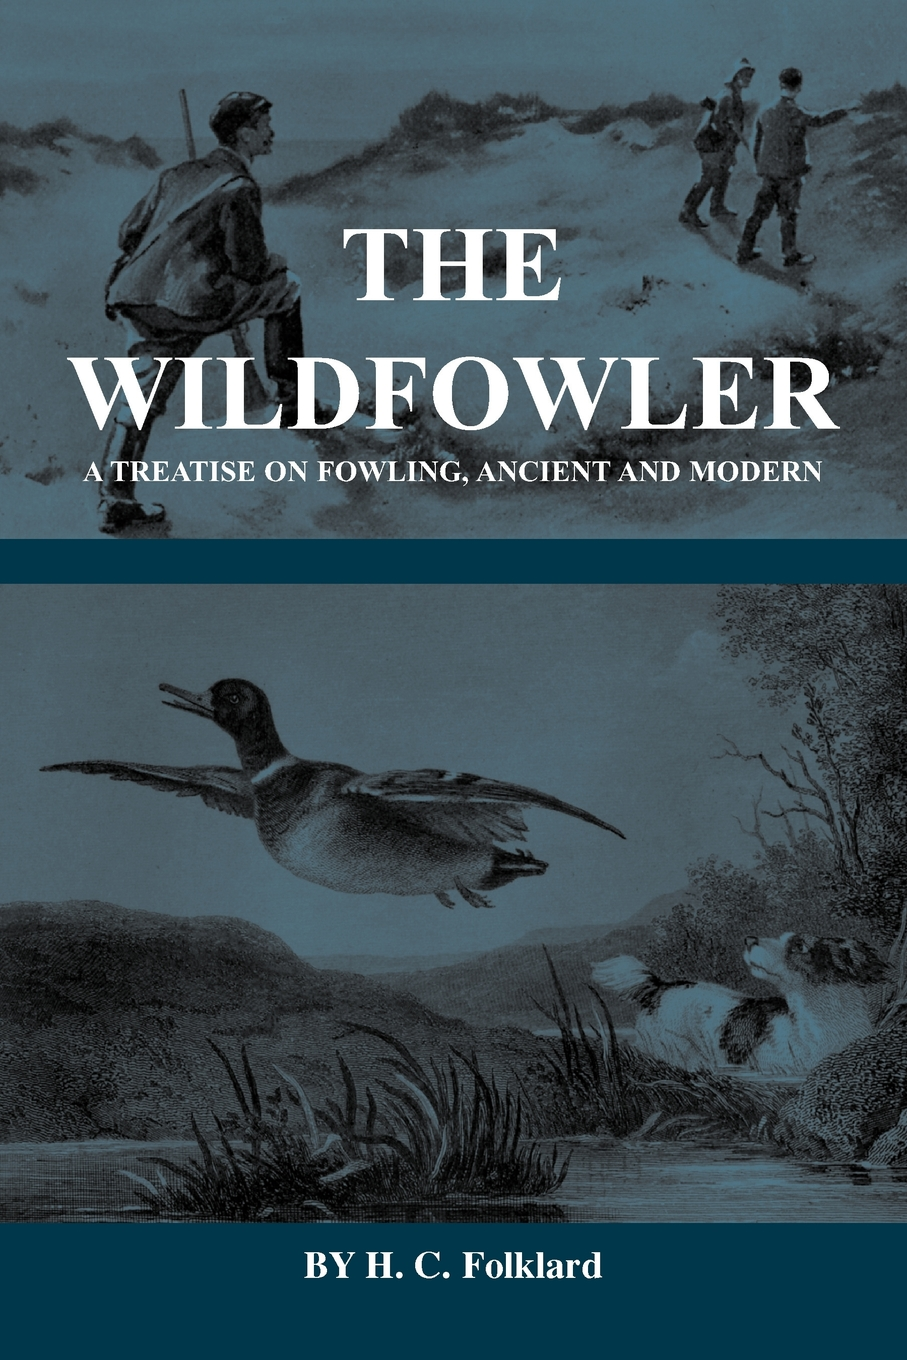 The Wildfowler - A Treatise On Fowling, Ancient And Modern (History of Shooting Series - Wildfowling)